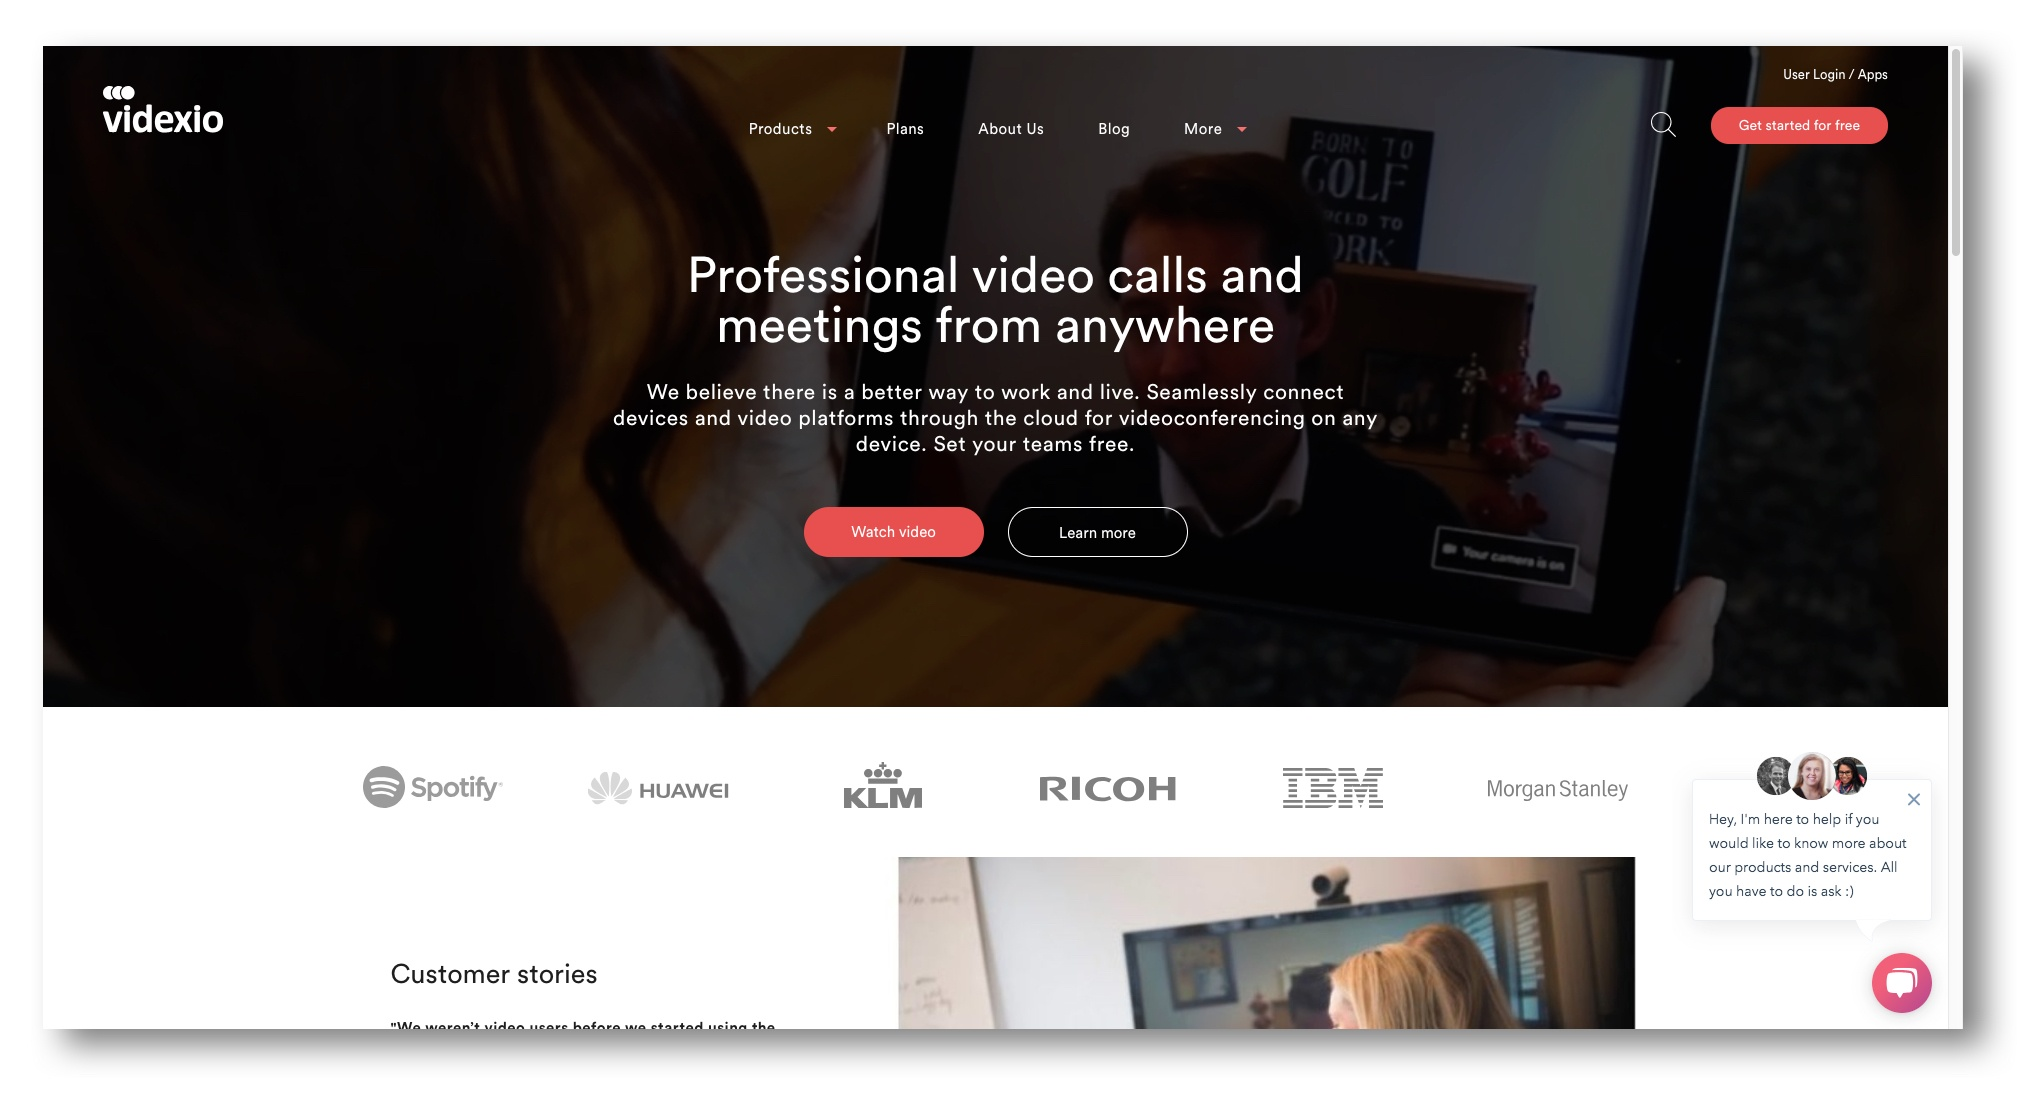 Videxio's new home page